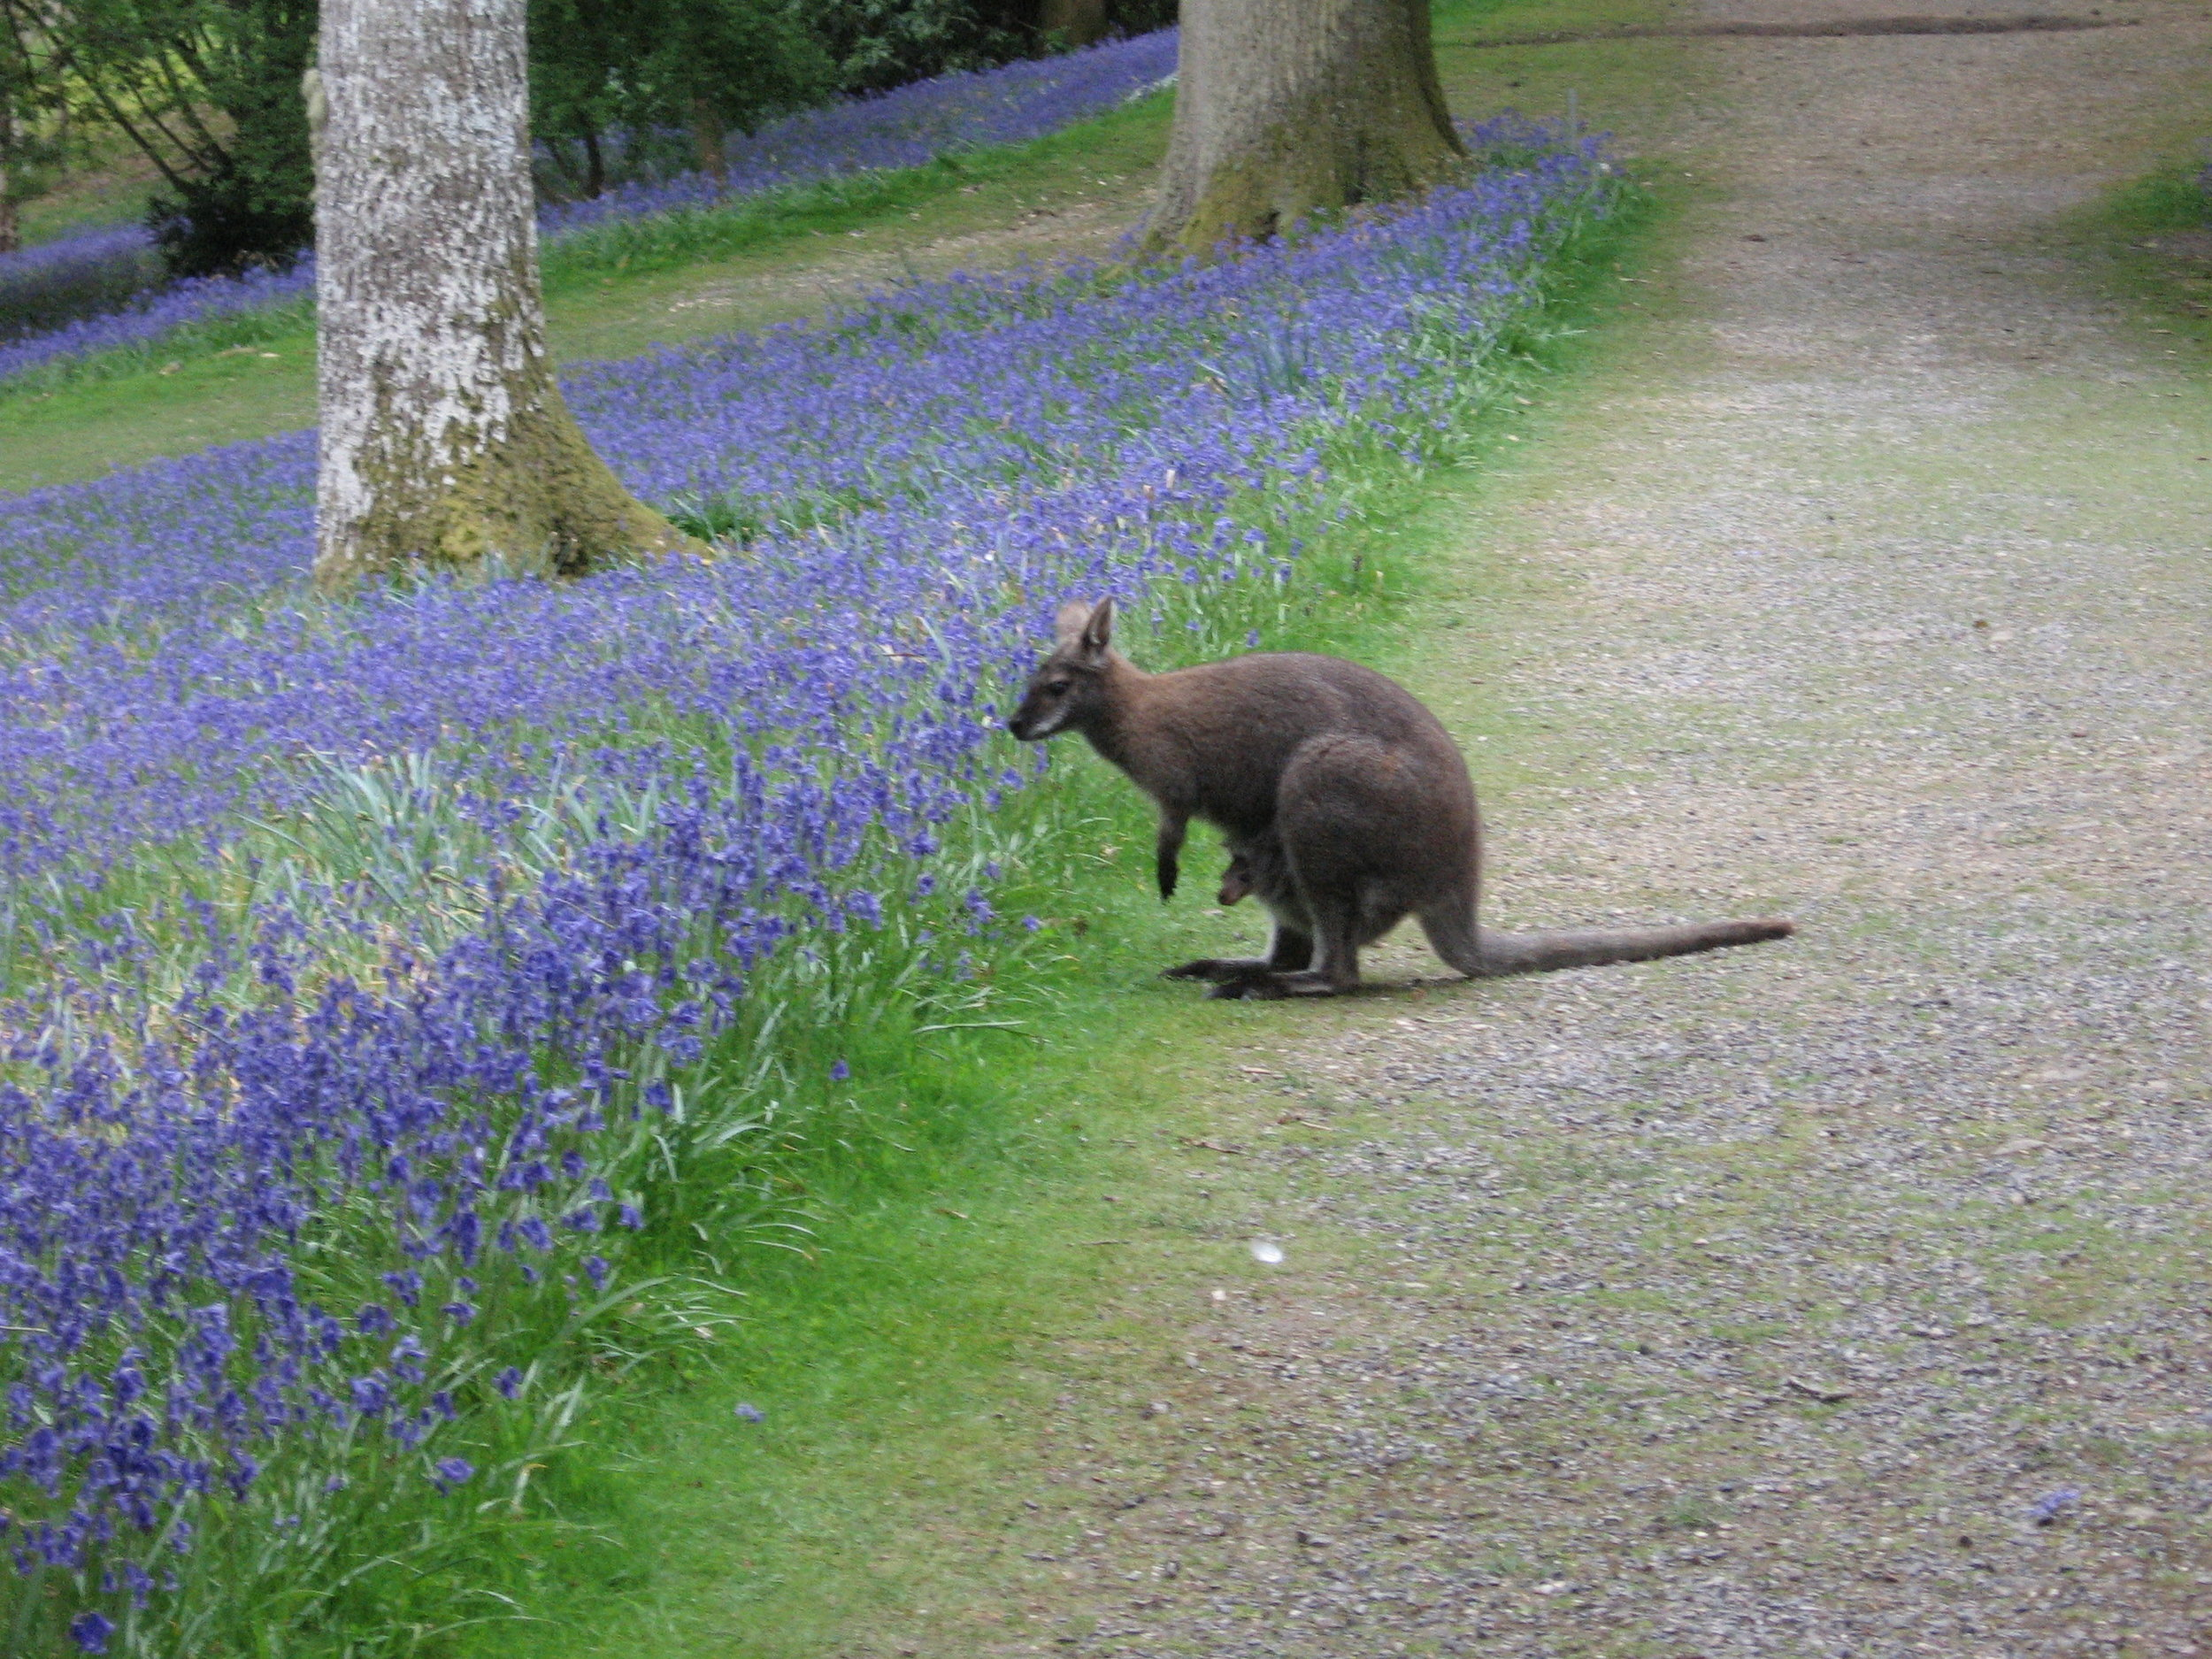 Wallaby Leoanrdslee Sussex.jpg